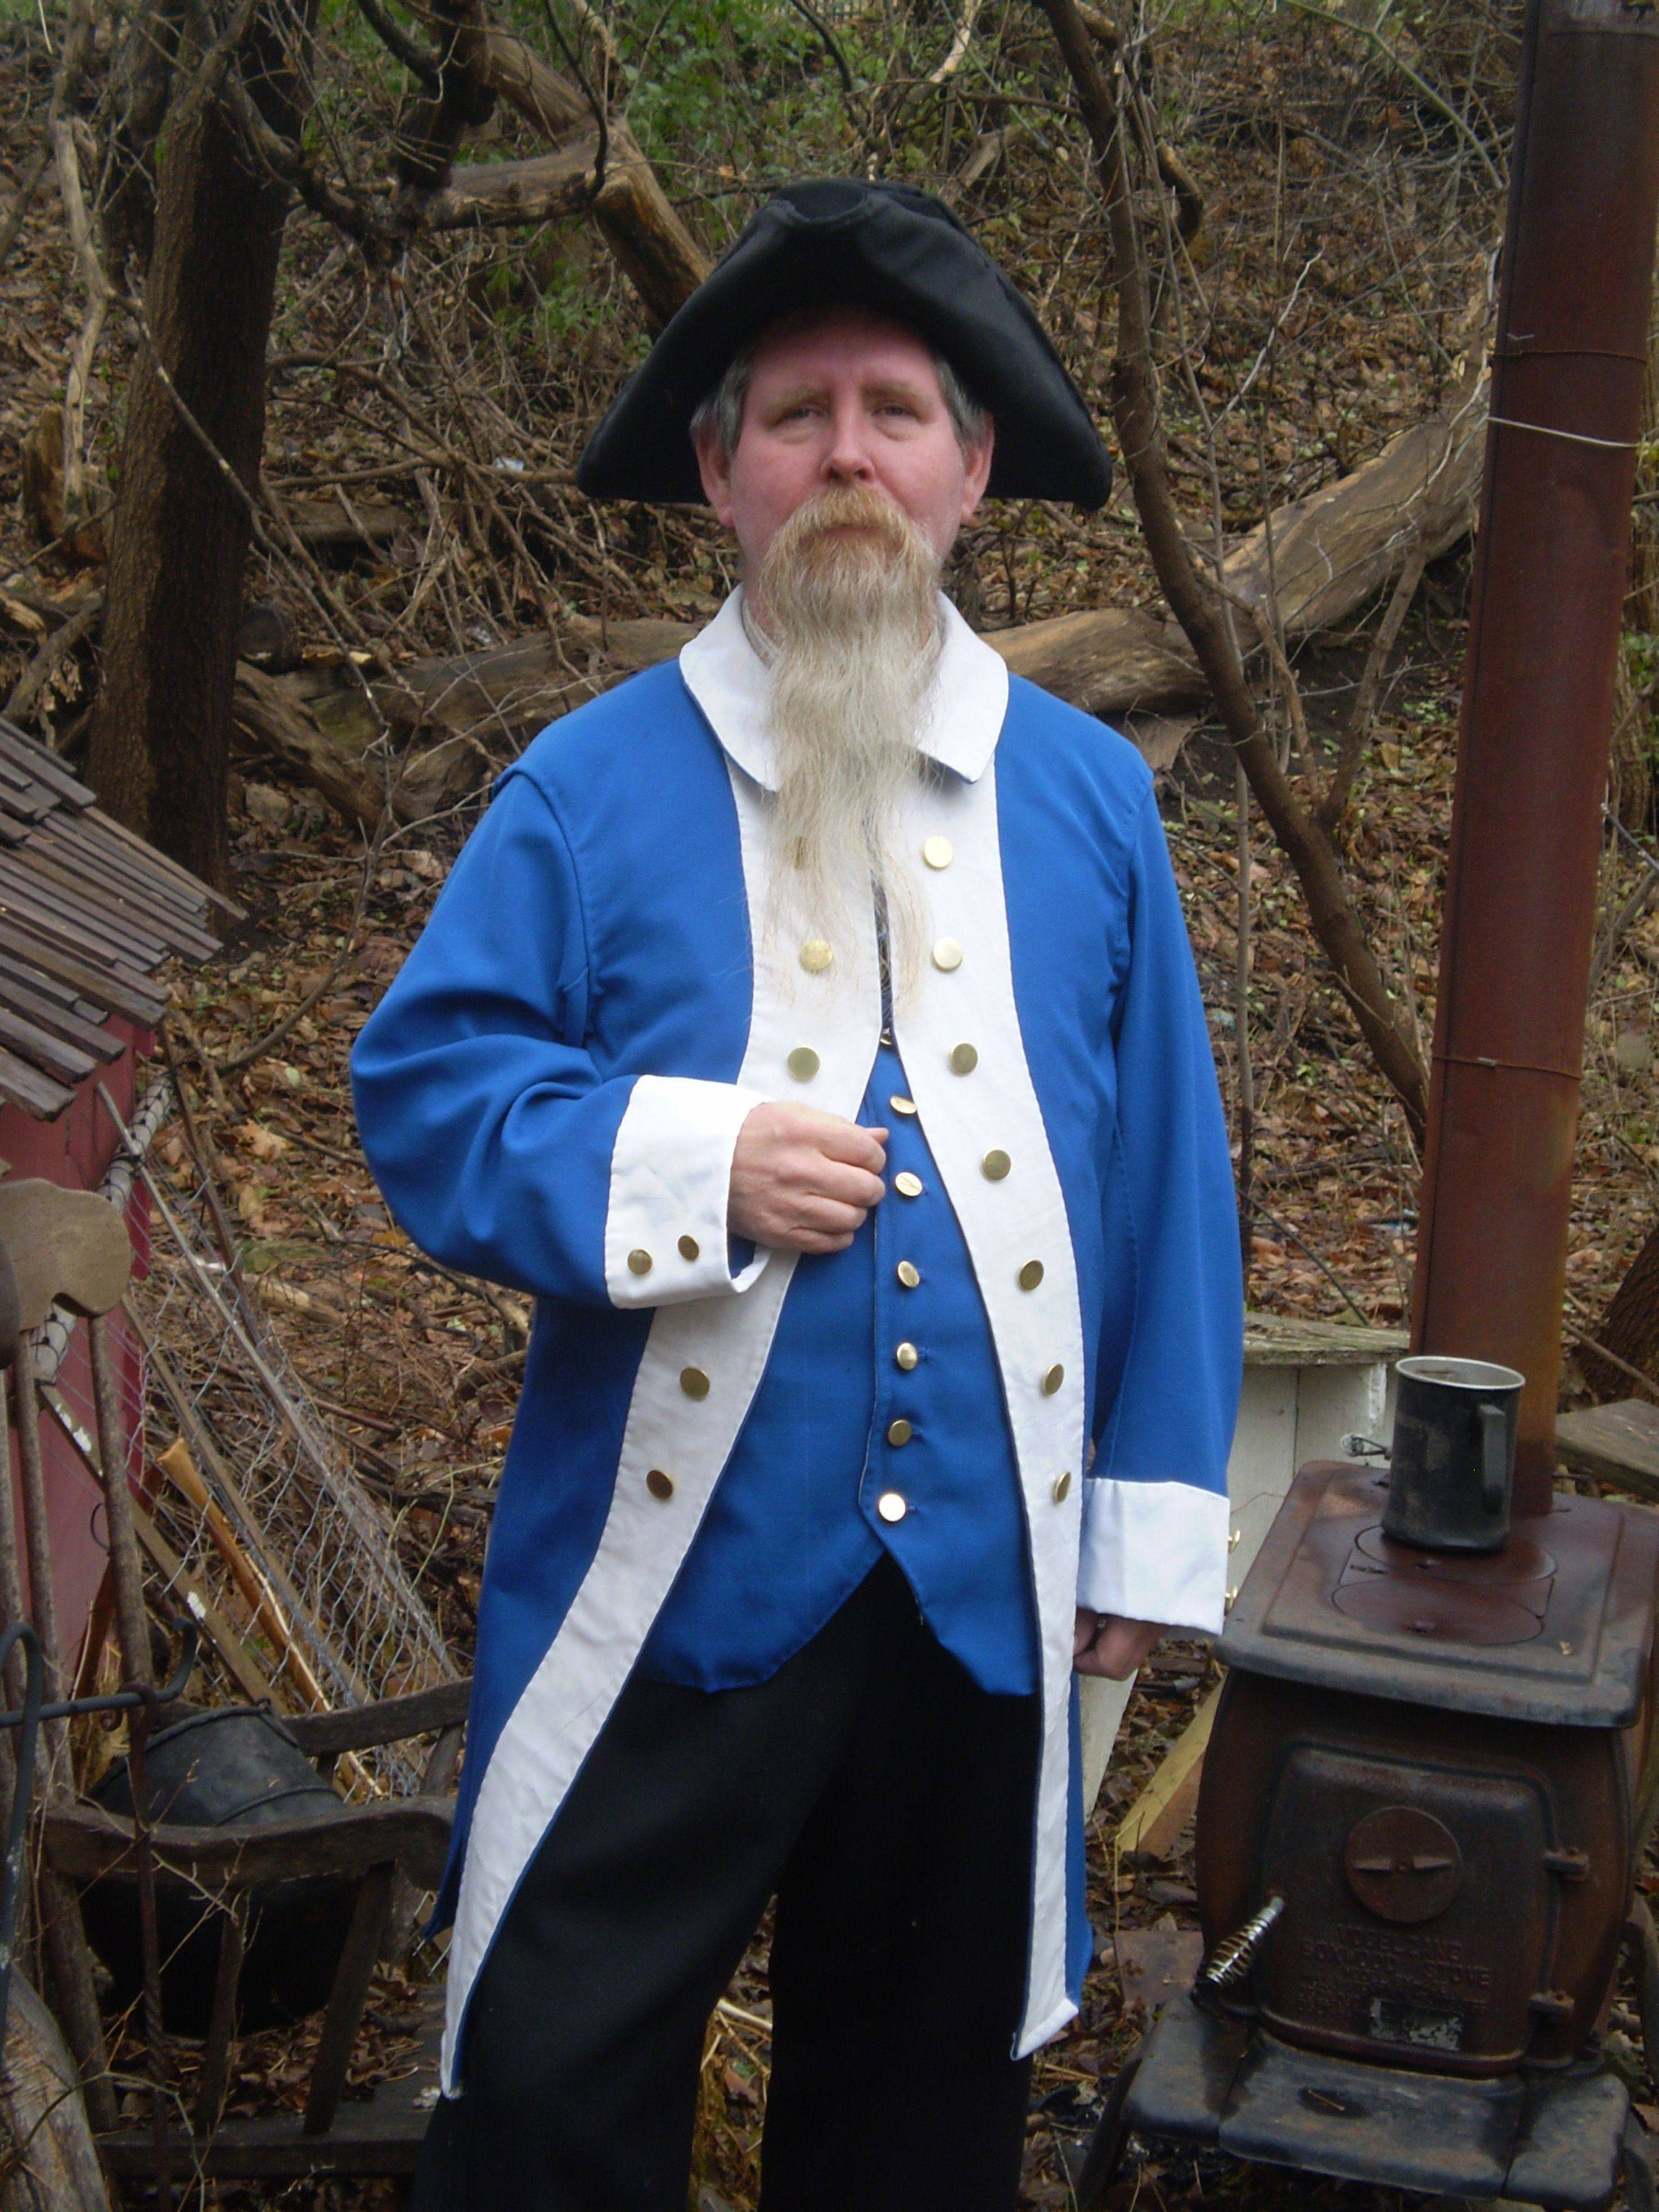 Ken Gough suited up for Elgin's Cemetery Walk wearing the 7th Illinois Volunteer Infantry uniform in Bluff City Cemetery. He has participated in re-enactments for 40 years and enjoys researching Civil War history as well as teaching others about it.